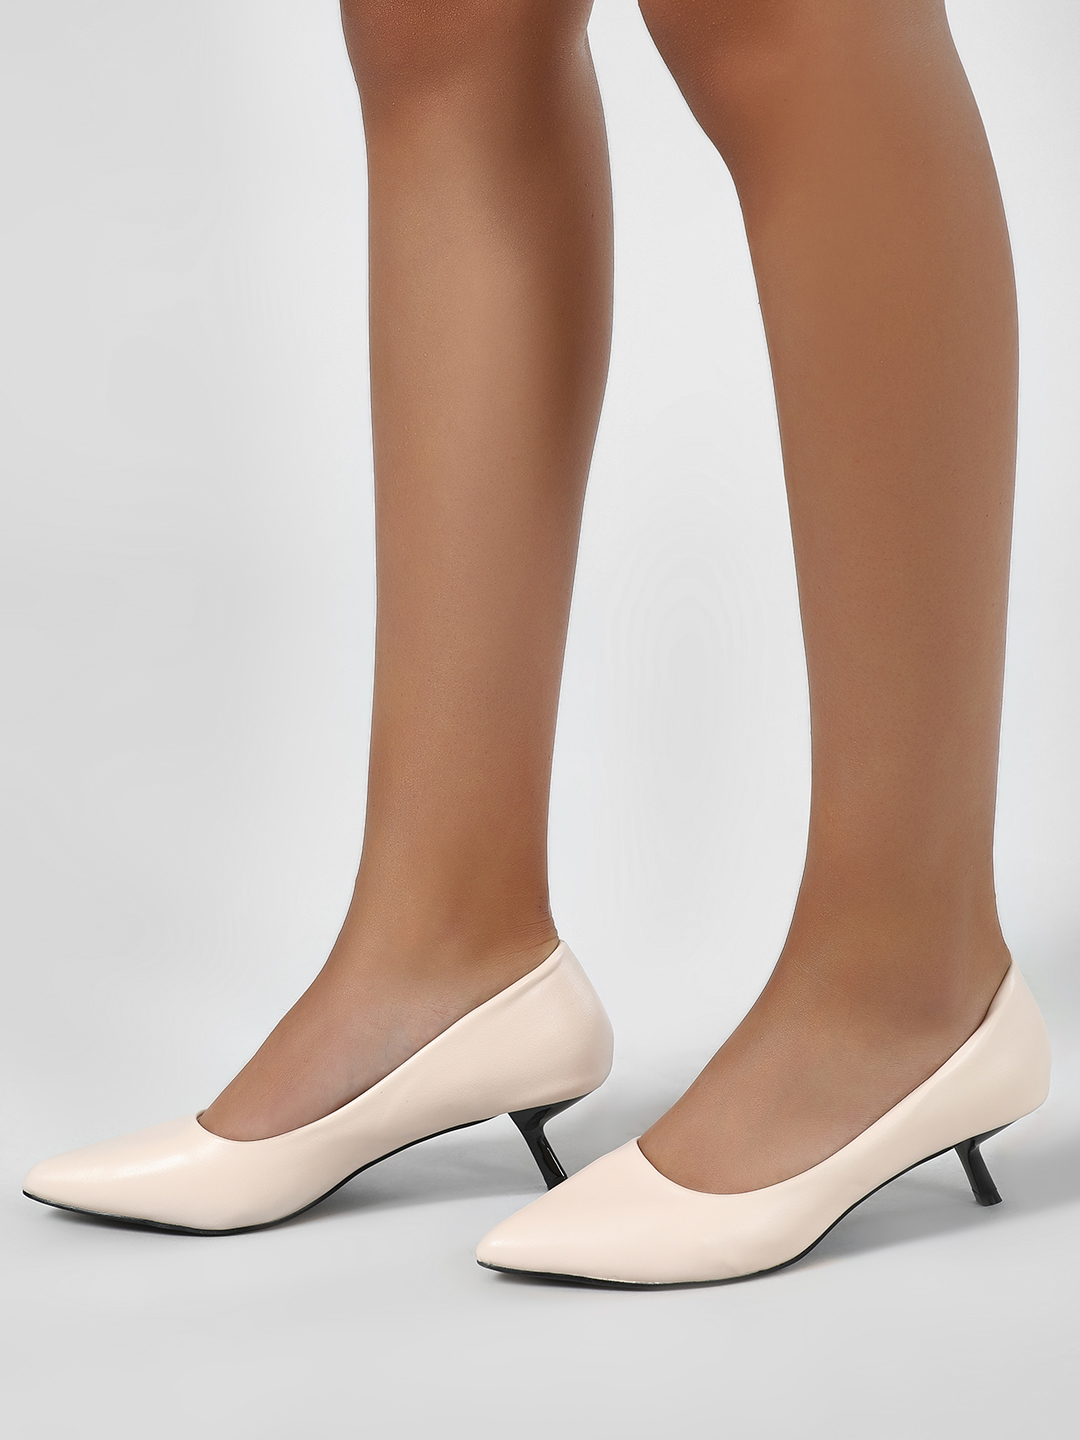 Intoto Black/Nude Angular Kitten Heel Pumps 1